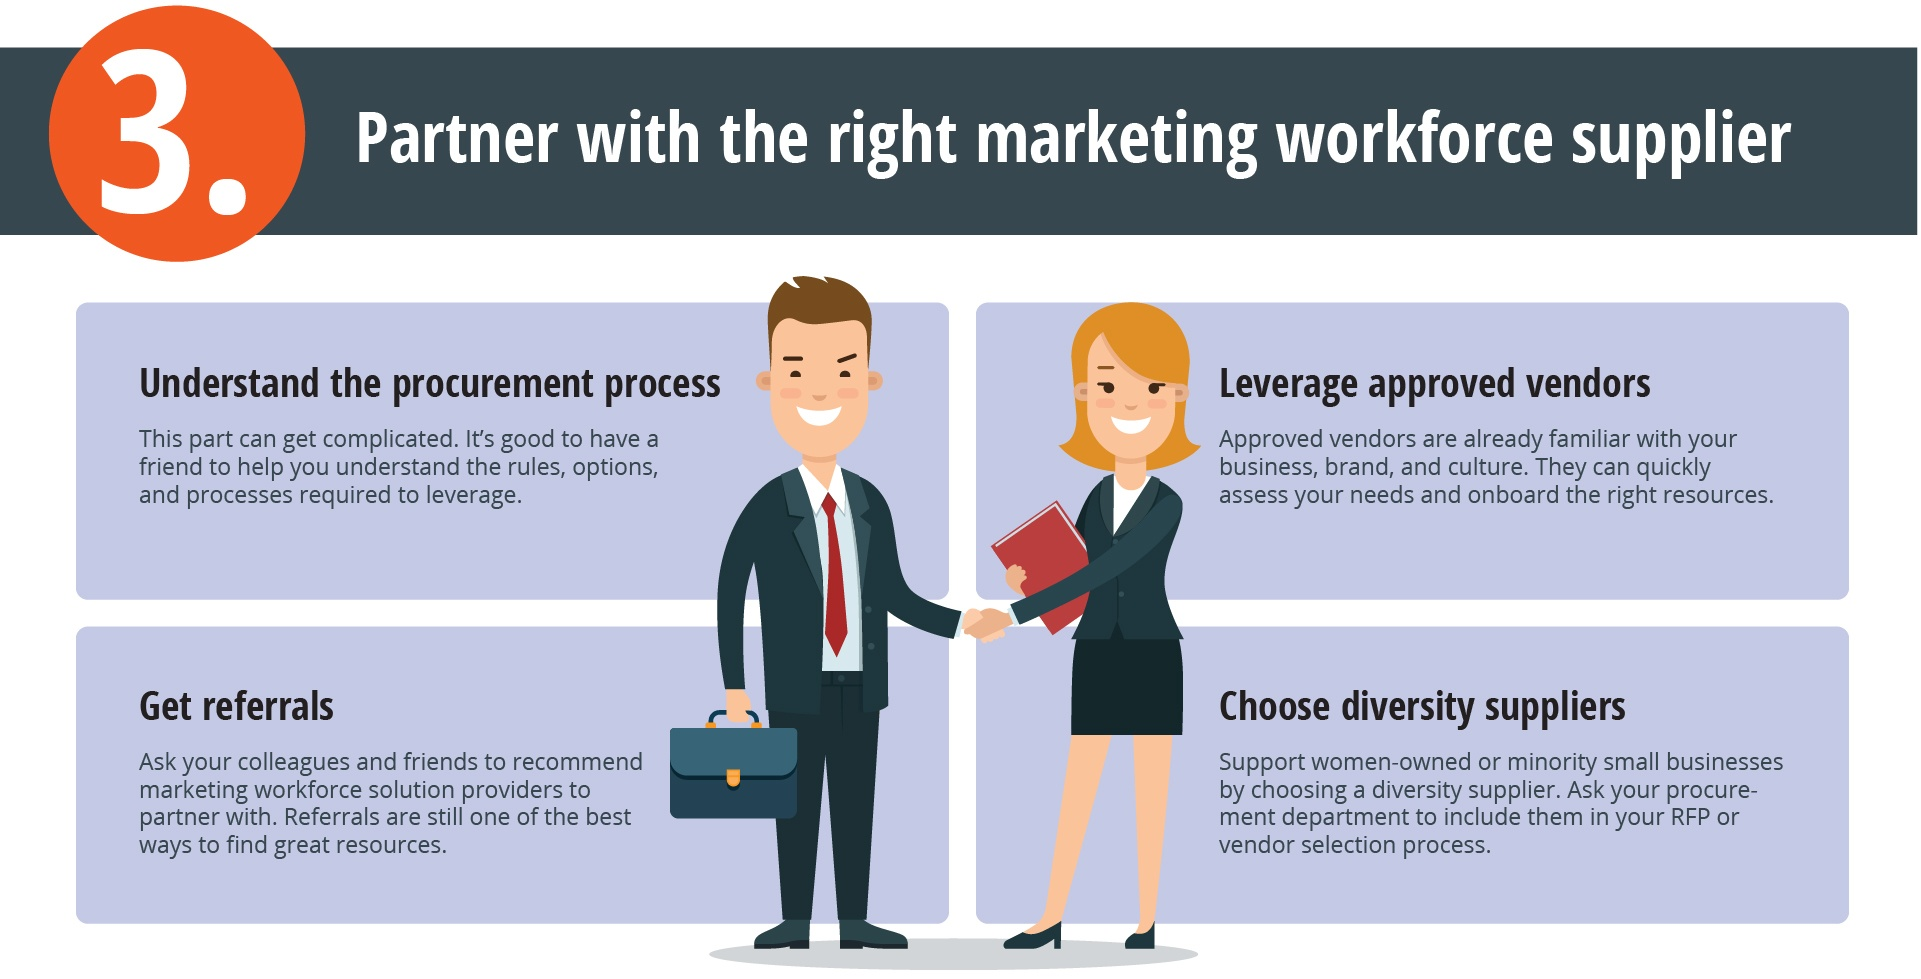 Partner with the right marketing workforce supplier; leverage approved vendors and choose diversity suppliers